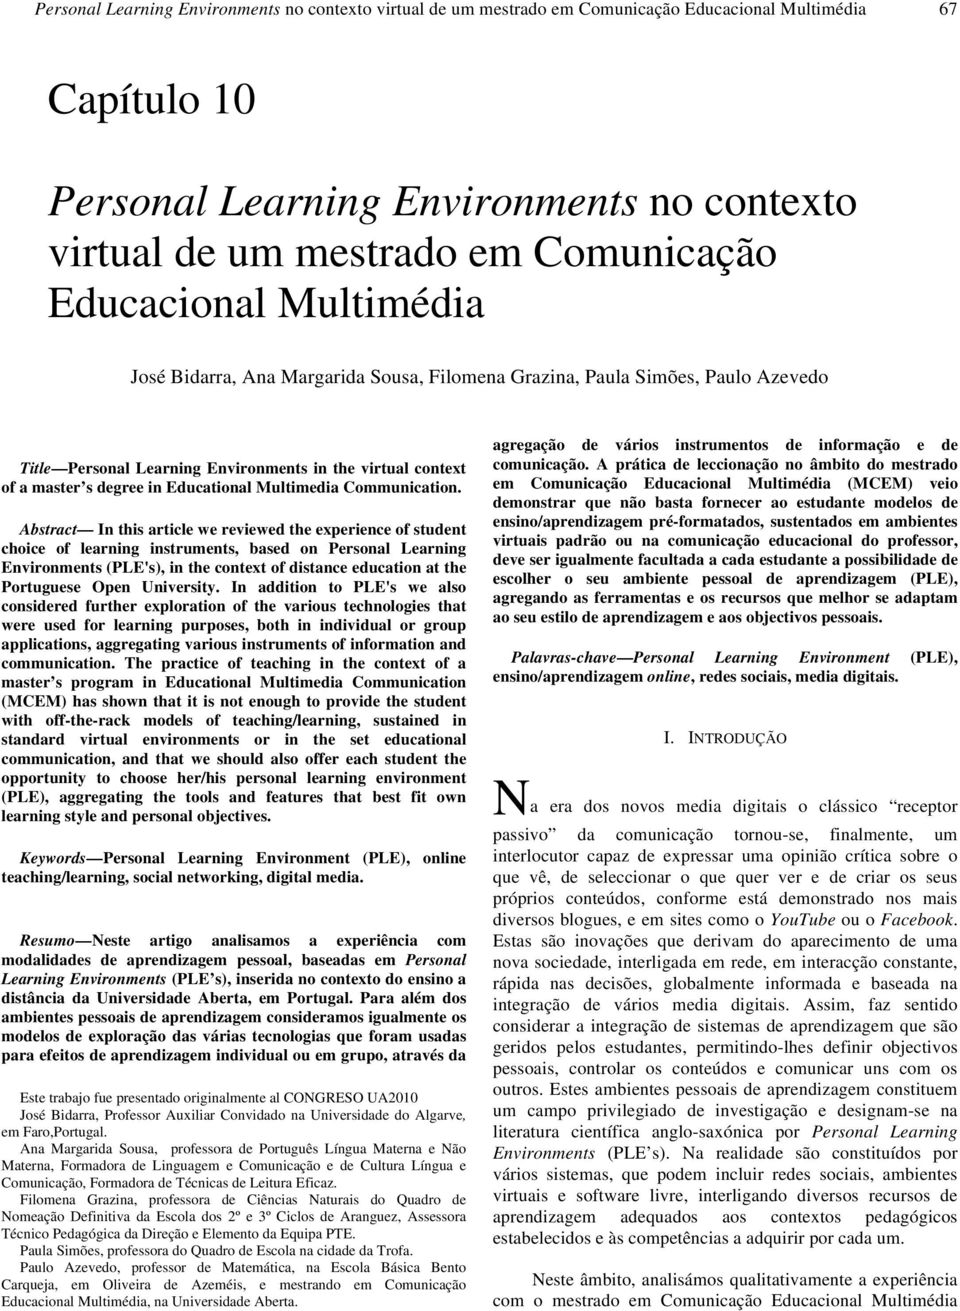 Abstract In this article we reviewed the experience of student choice of learning instruments, based on Personal Learning Environments (PLE's), in the context of distance education at the Portuguese